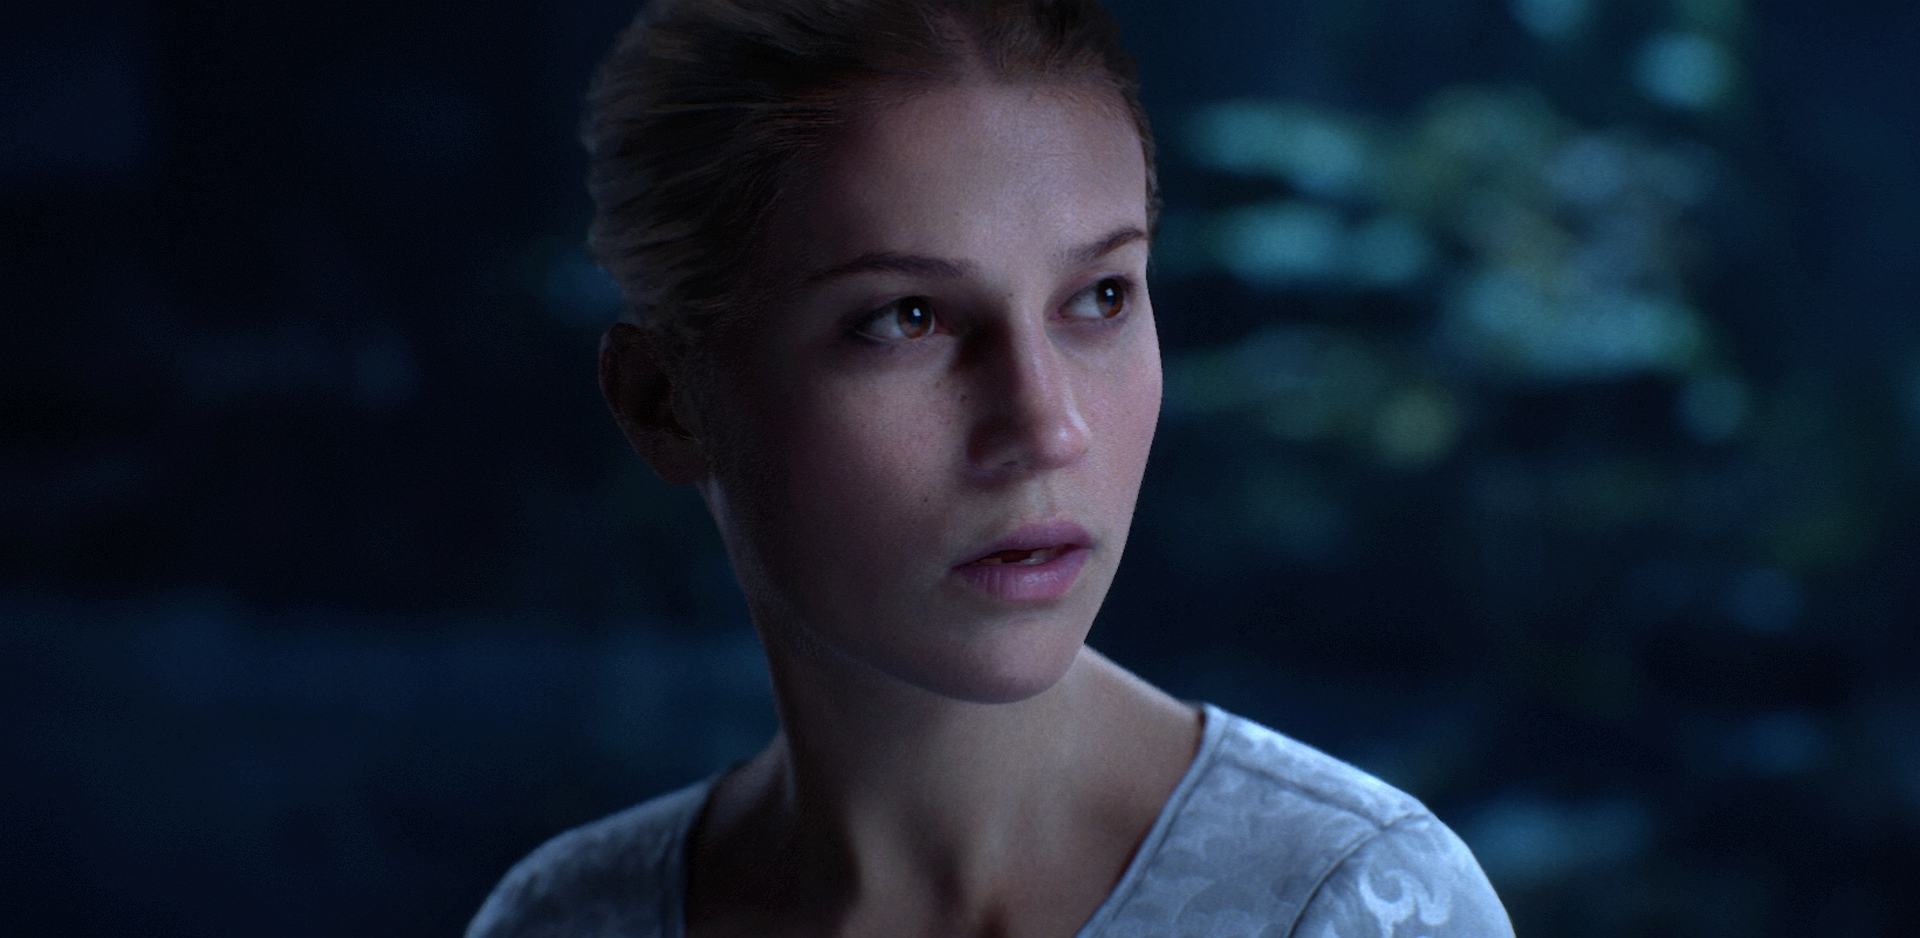 Epic Showcases Gorgeous Ray Tracing Unreal Engine 4 Demo